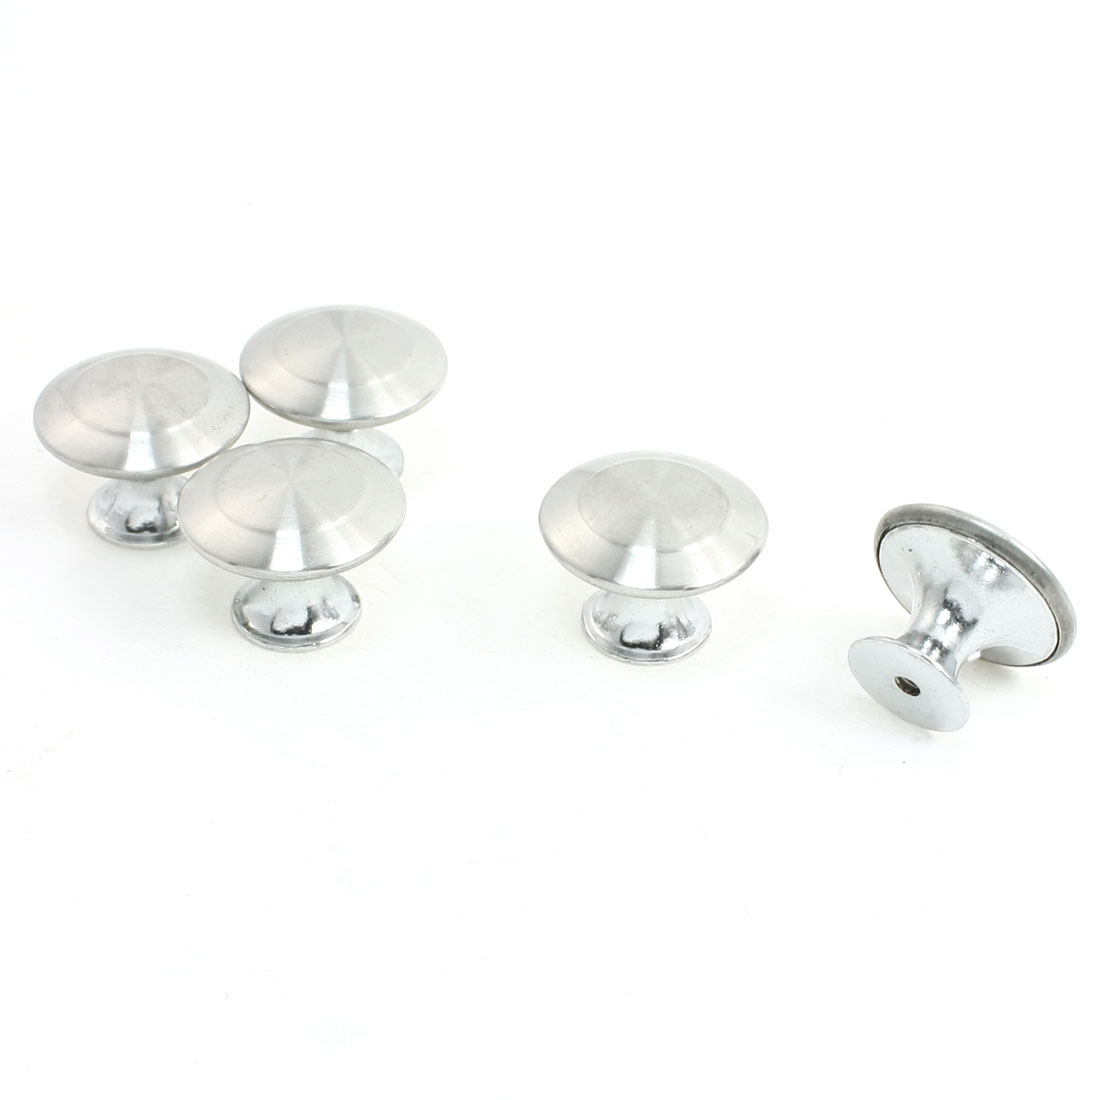 5Pcs Furniture Fitting Silver Tone 29mm Diameter Door Pull Round Knob